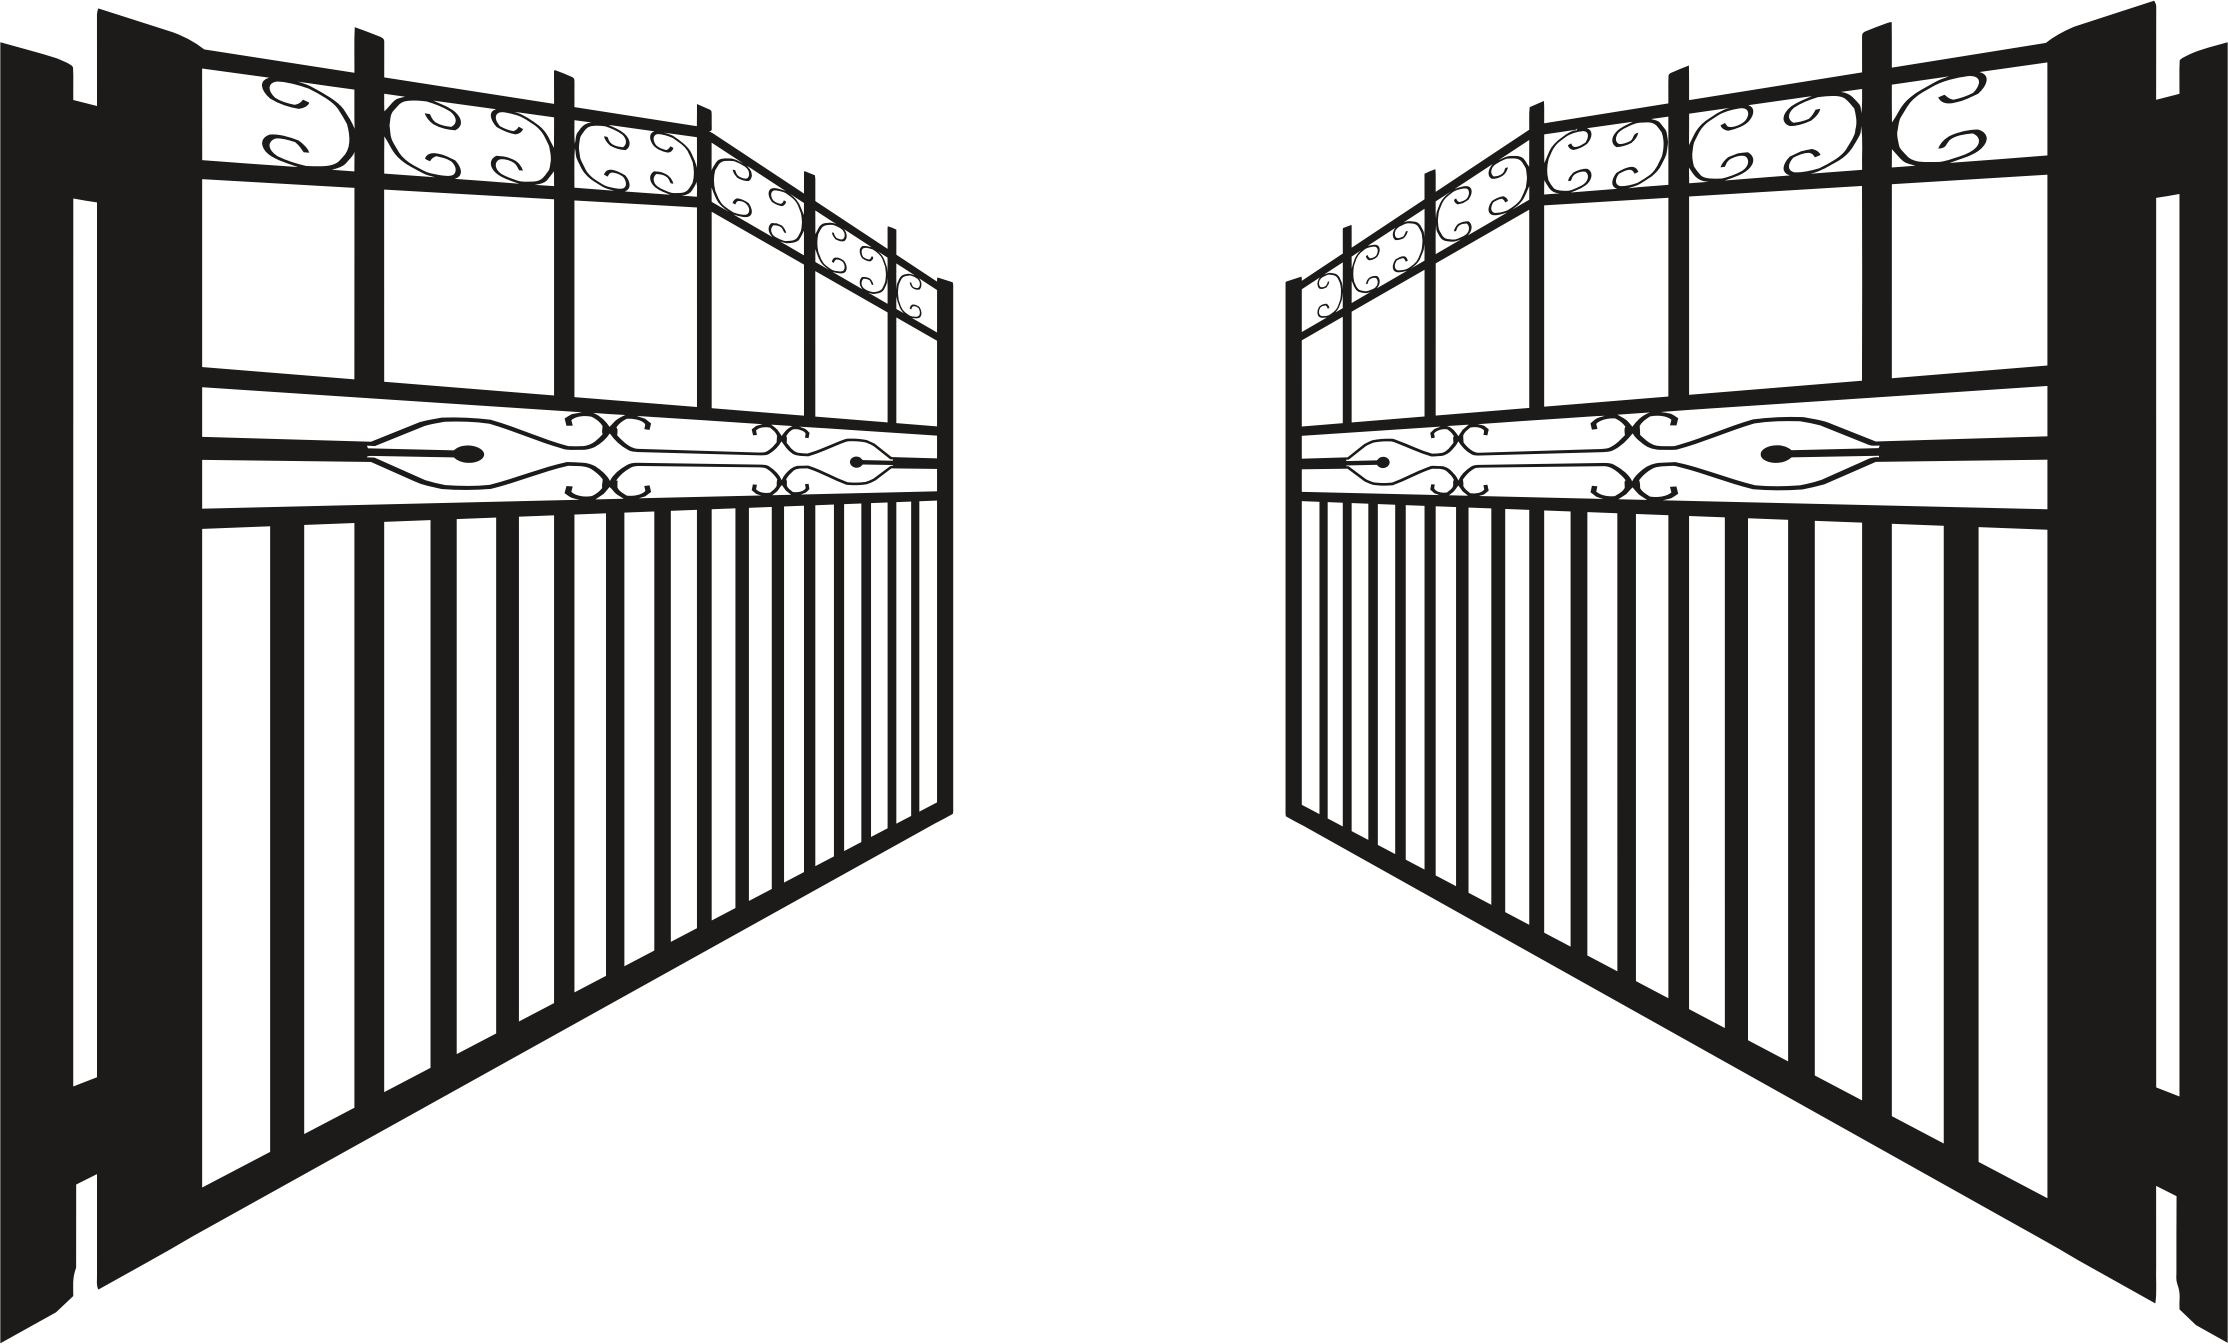 Gate clipart iron gate Opened Silhouette Clipart Iron Silhouette